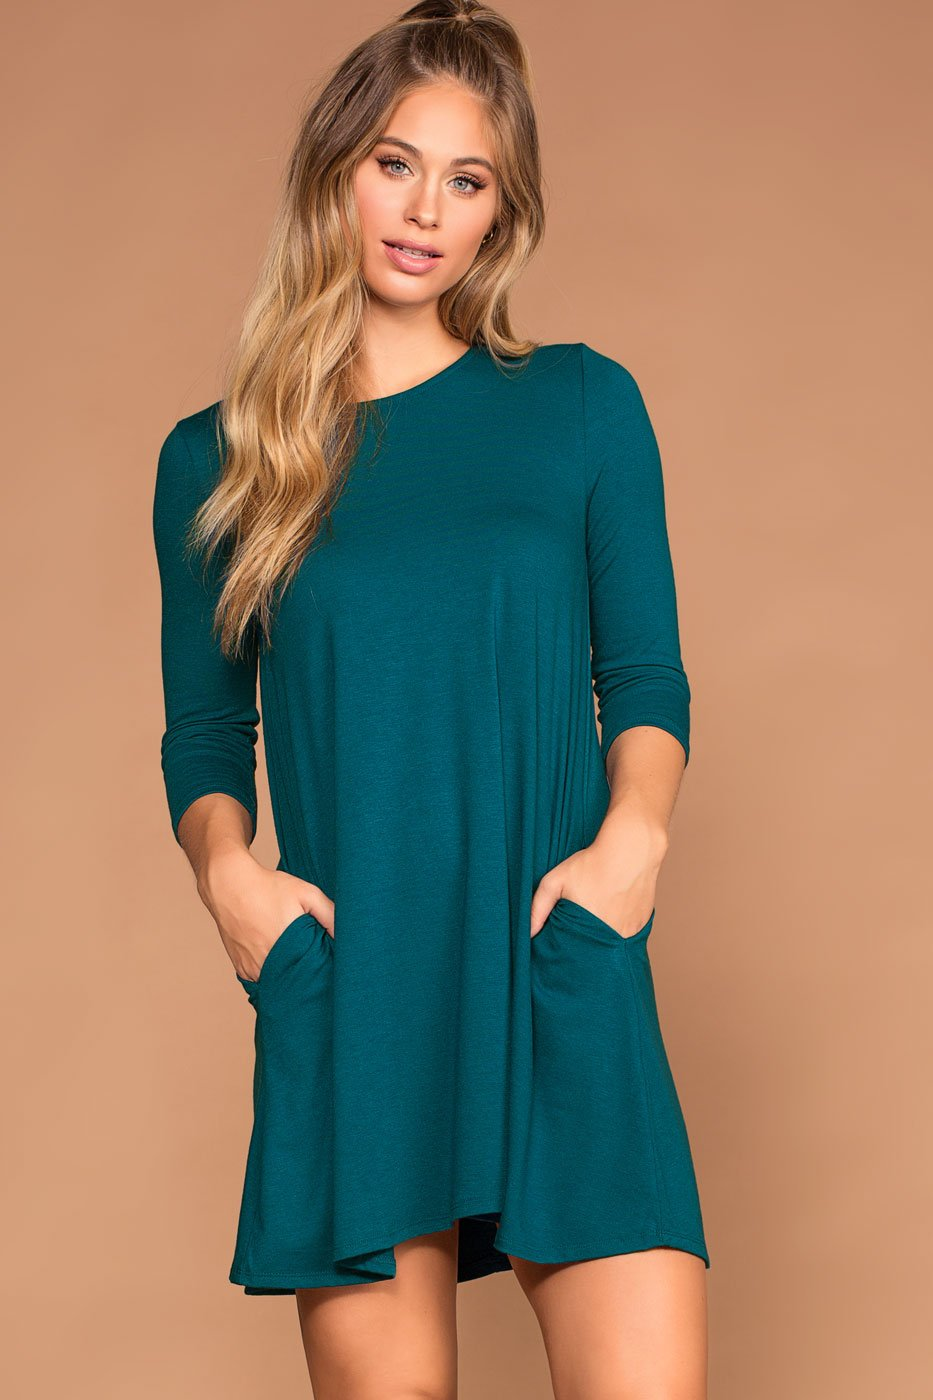 Dresses - Catching Leaves Swing Pocket Dress - Teal